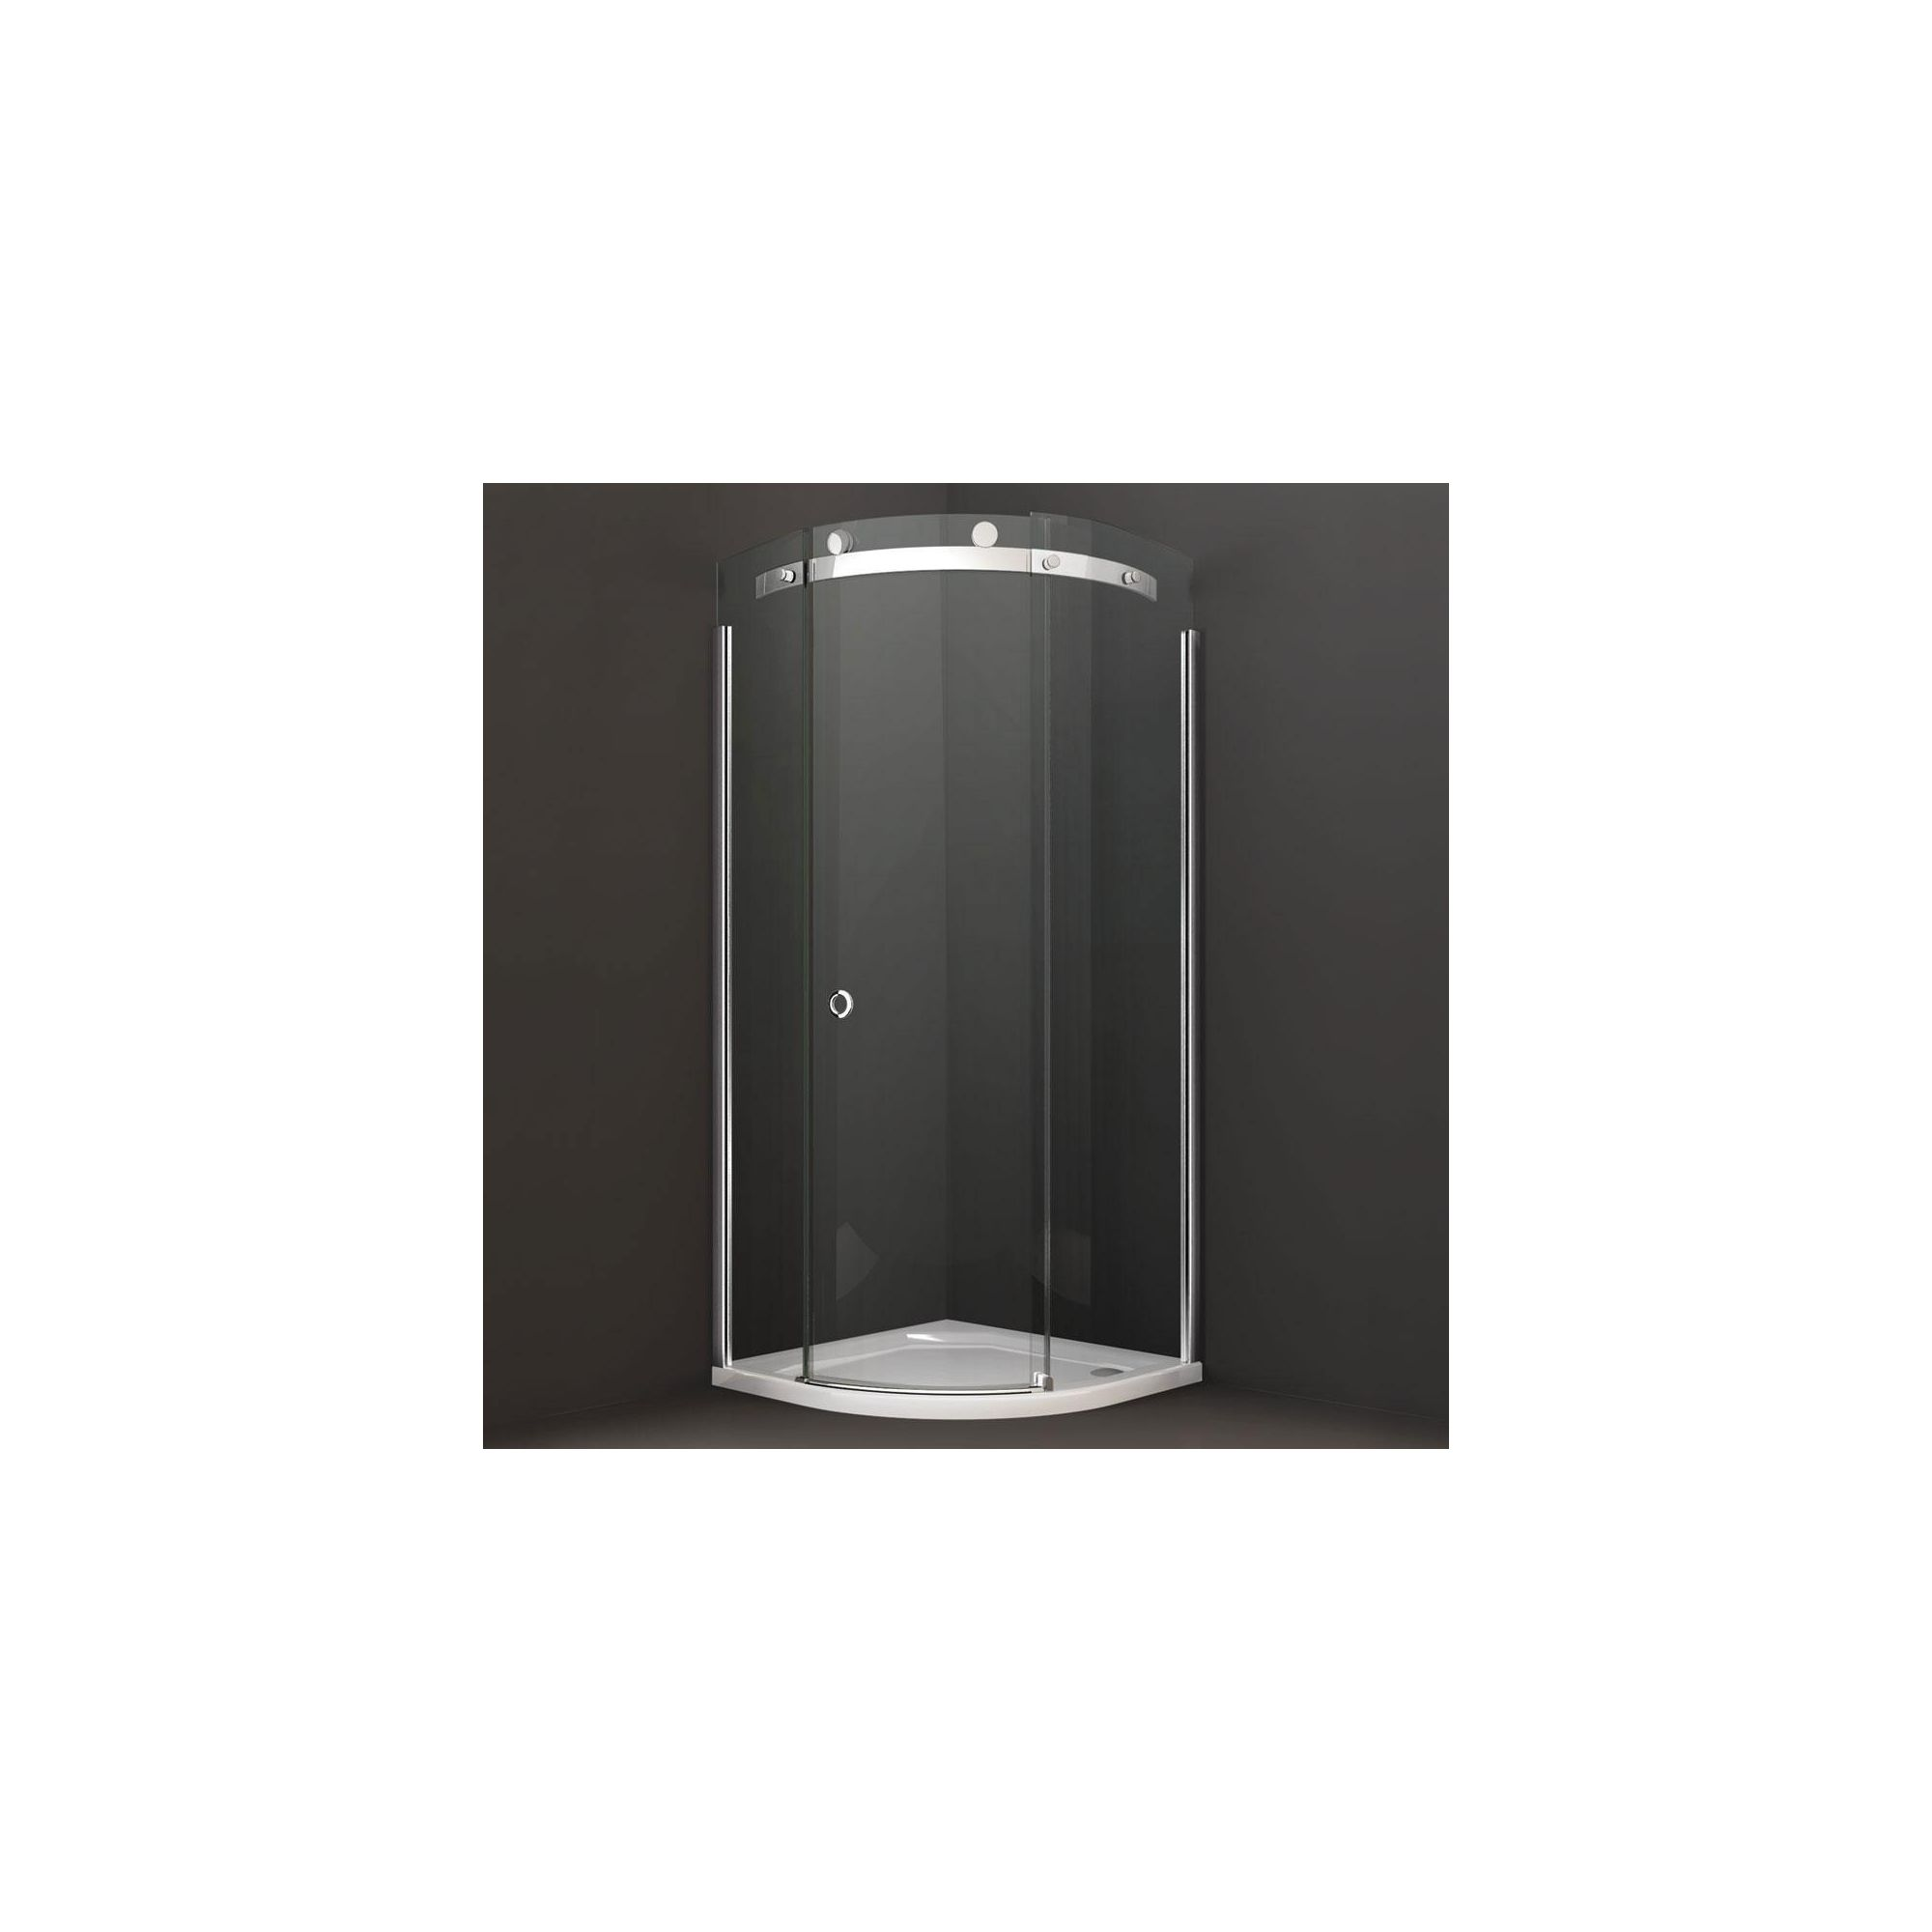 Merlyn Series 10 Quadrant Shower Door  800mm x 800mm  10mm Clear Glass  Right Handed